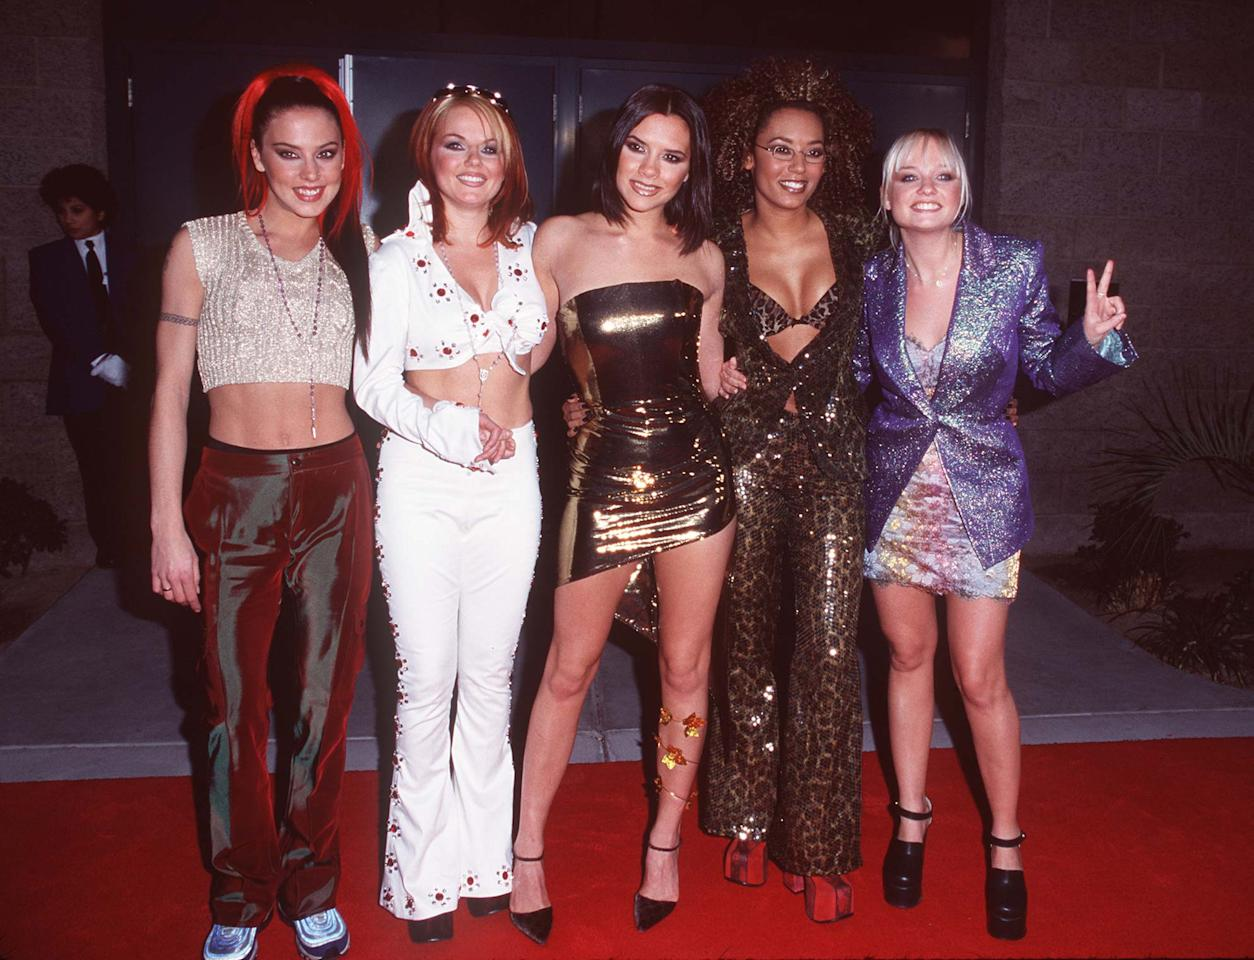 The Spice Girls dropped a bombshell about Victoria Beckham last night